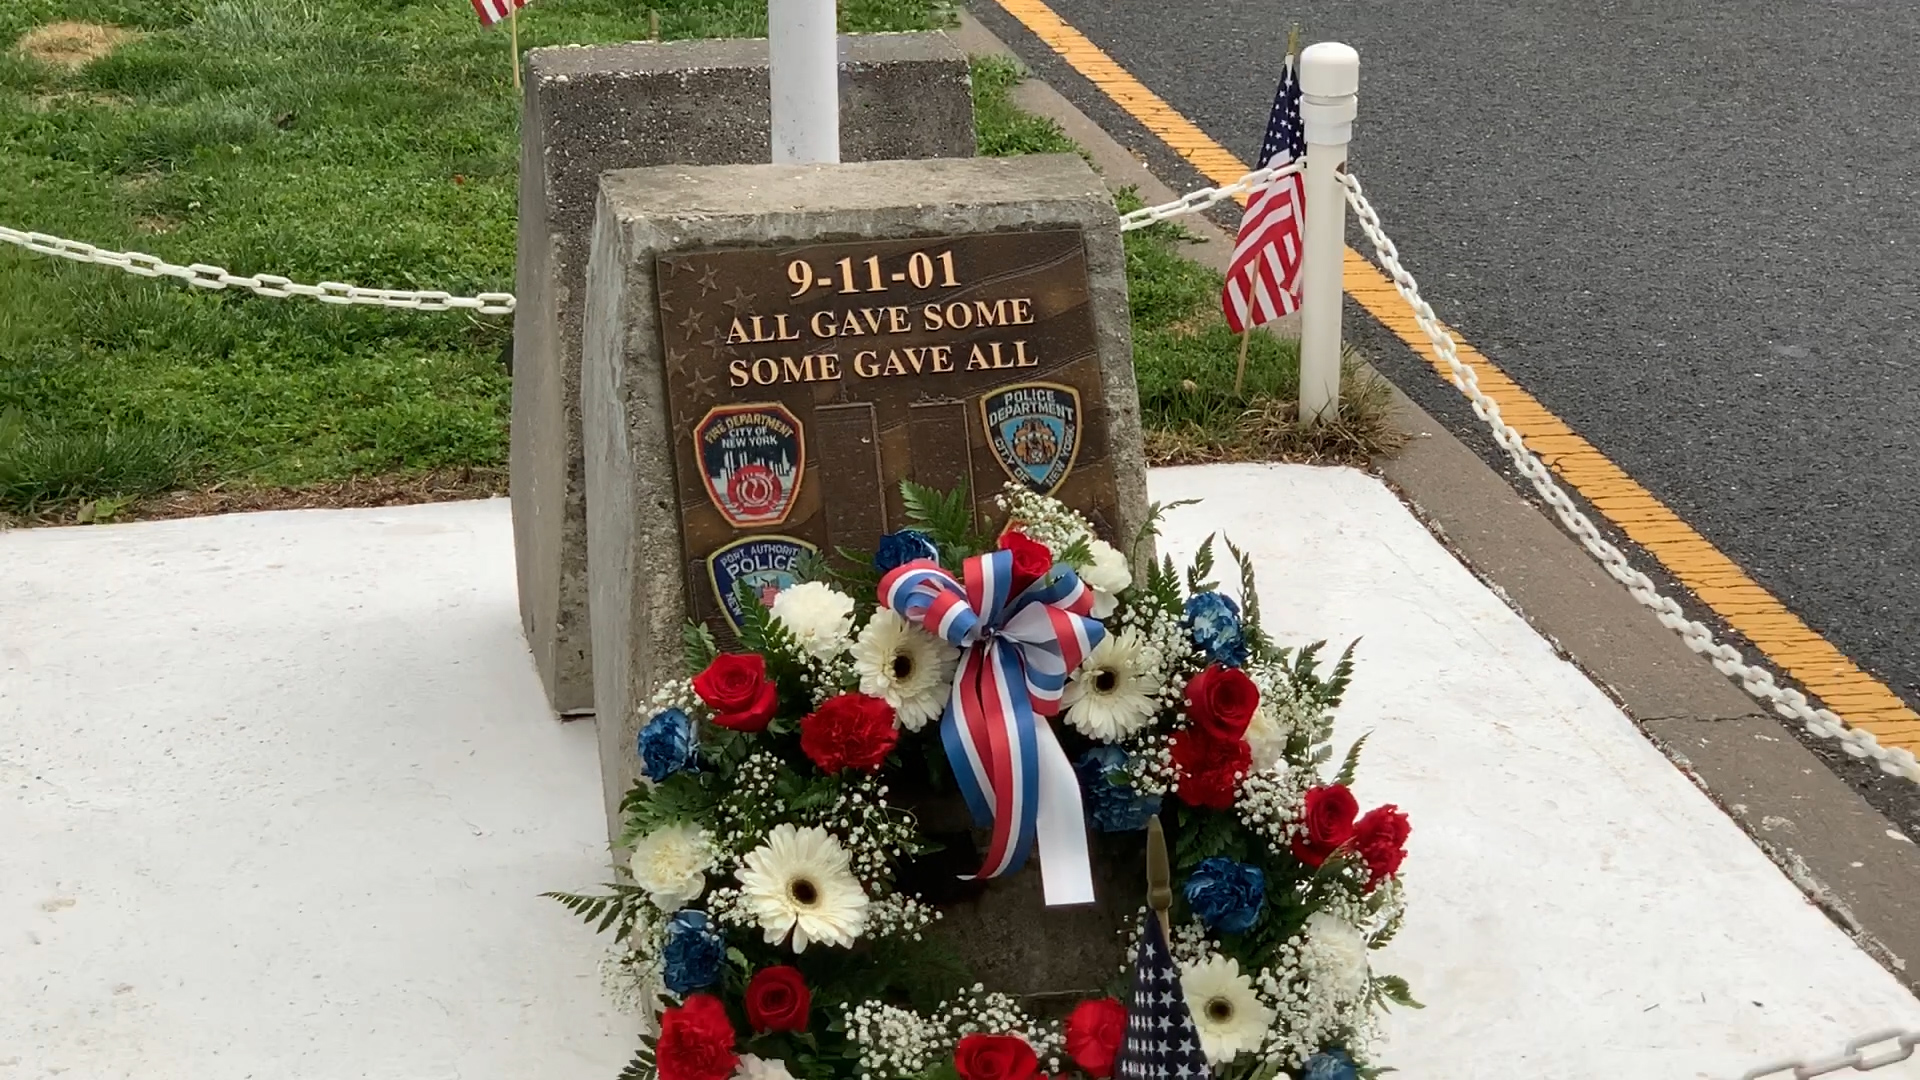 Northwest Bayside Civic Association Memorial Day Wreath Laying Ceremony